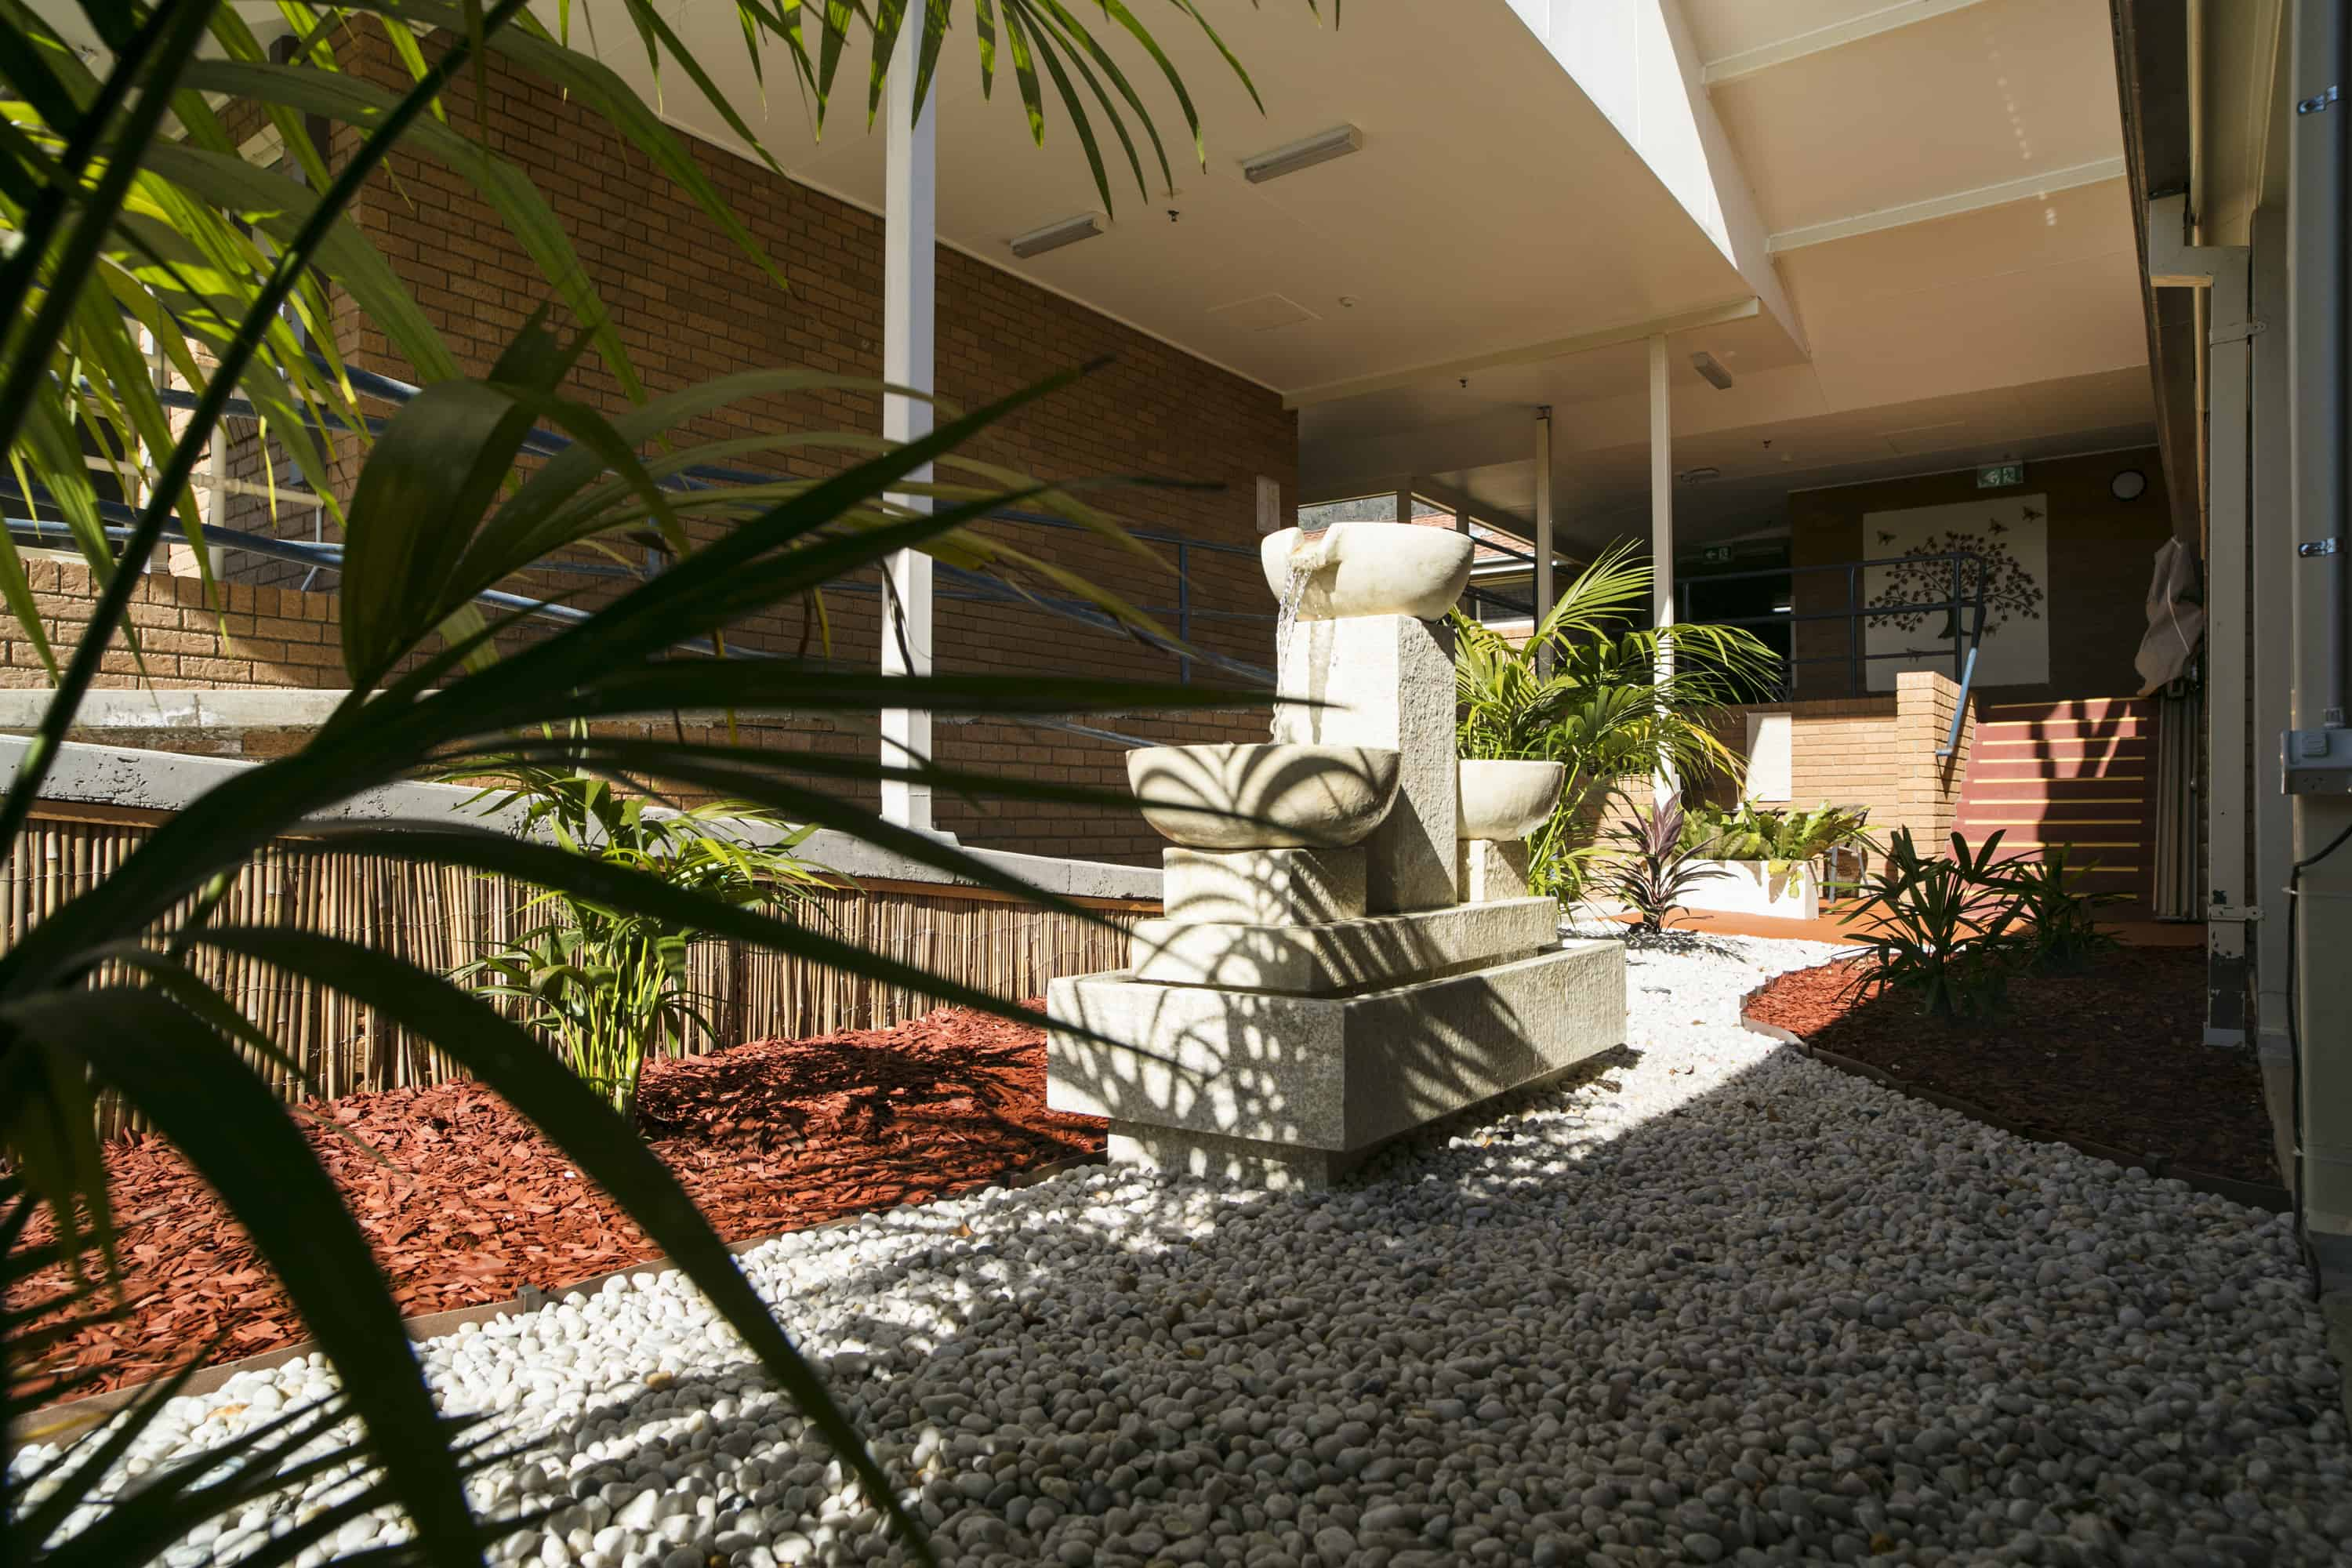 Front entrance of Whiddon Laurieton's residential aged care home, fitted with a water fountain and lush plants.